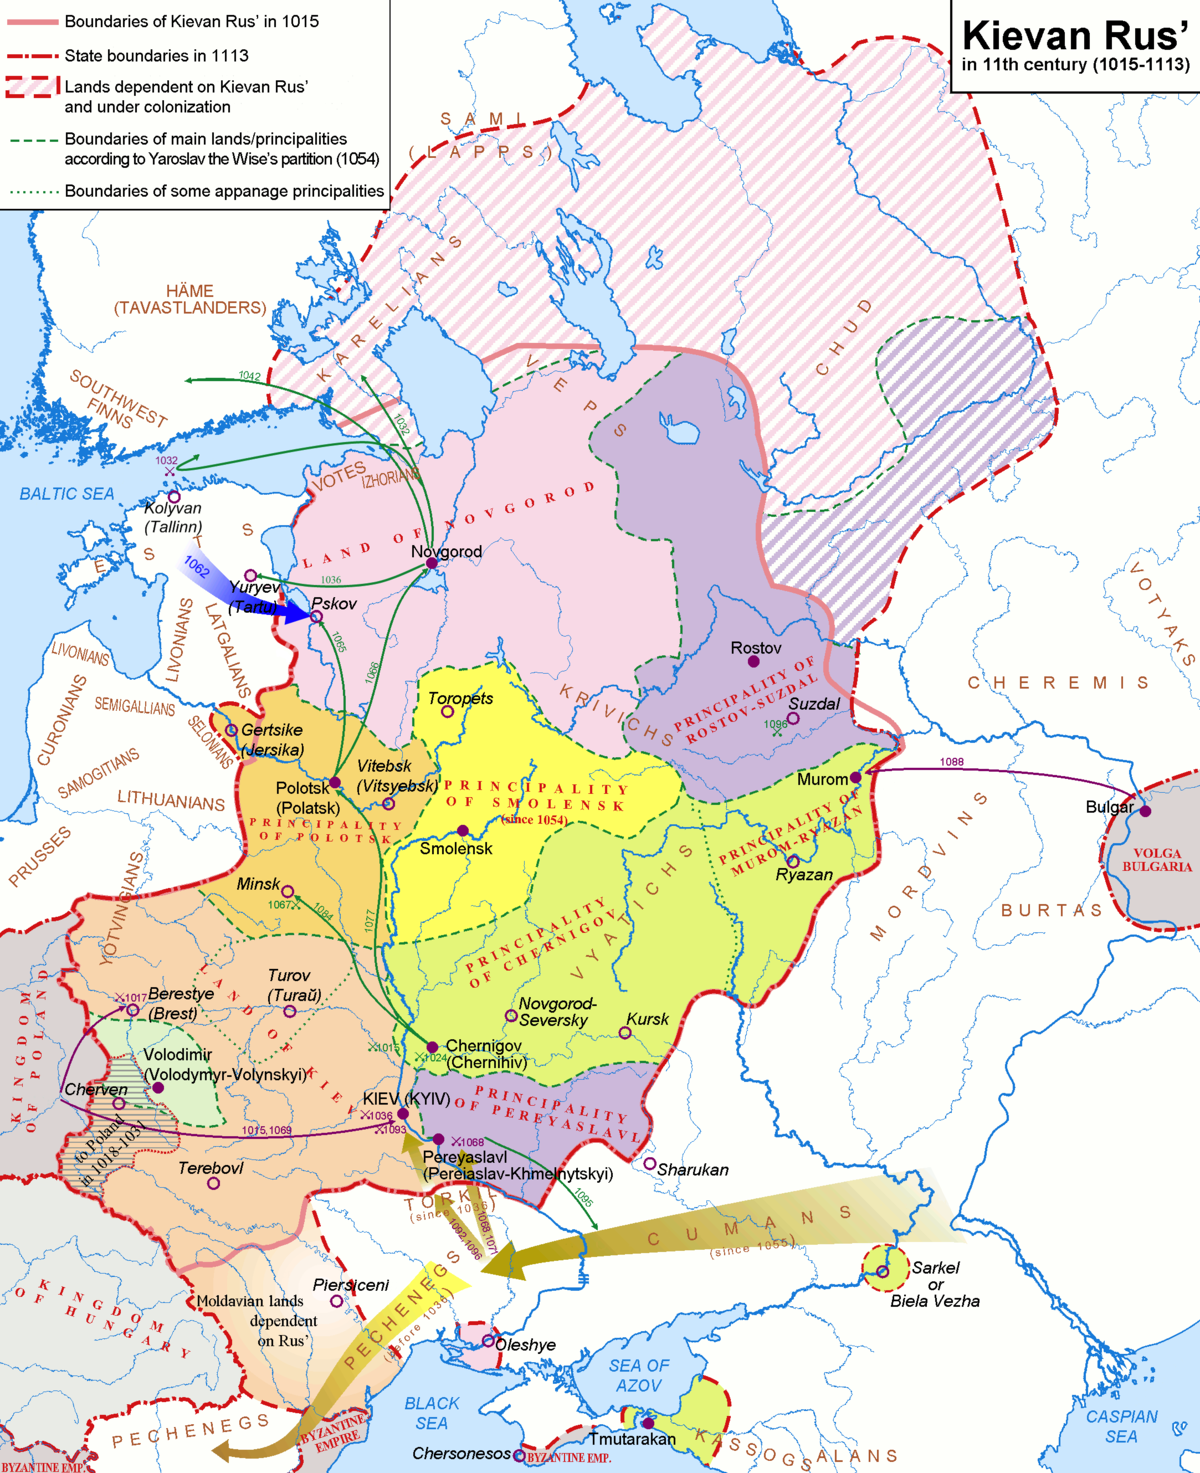 History of Ancient Russia: Briefly about Vladimir Monomakh 63